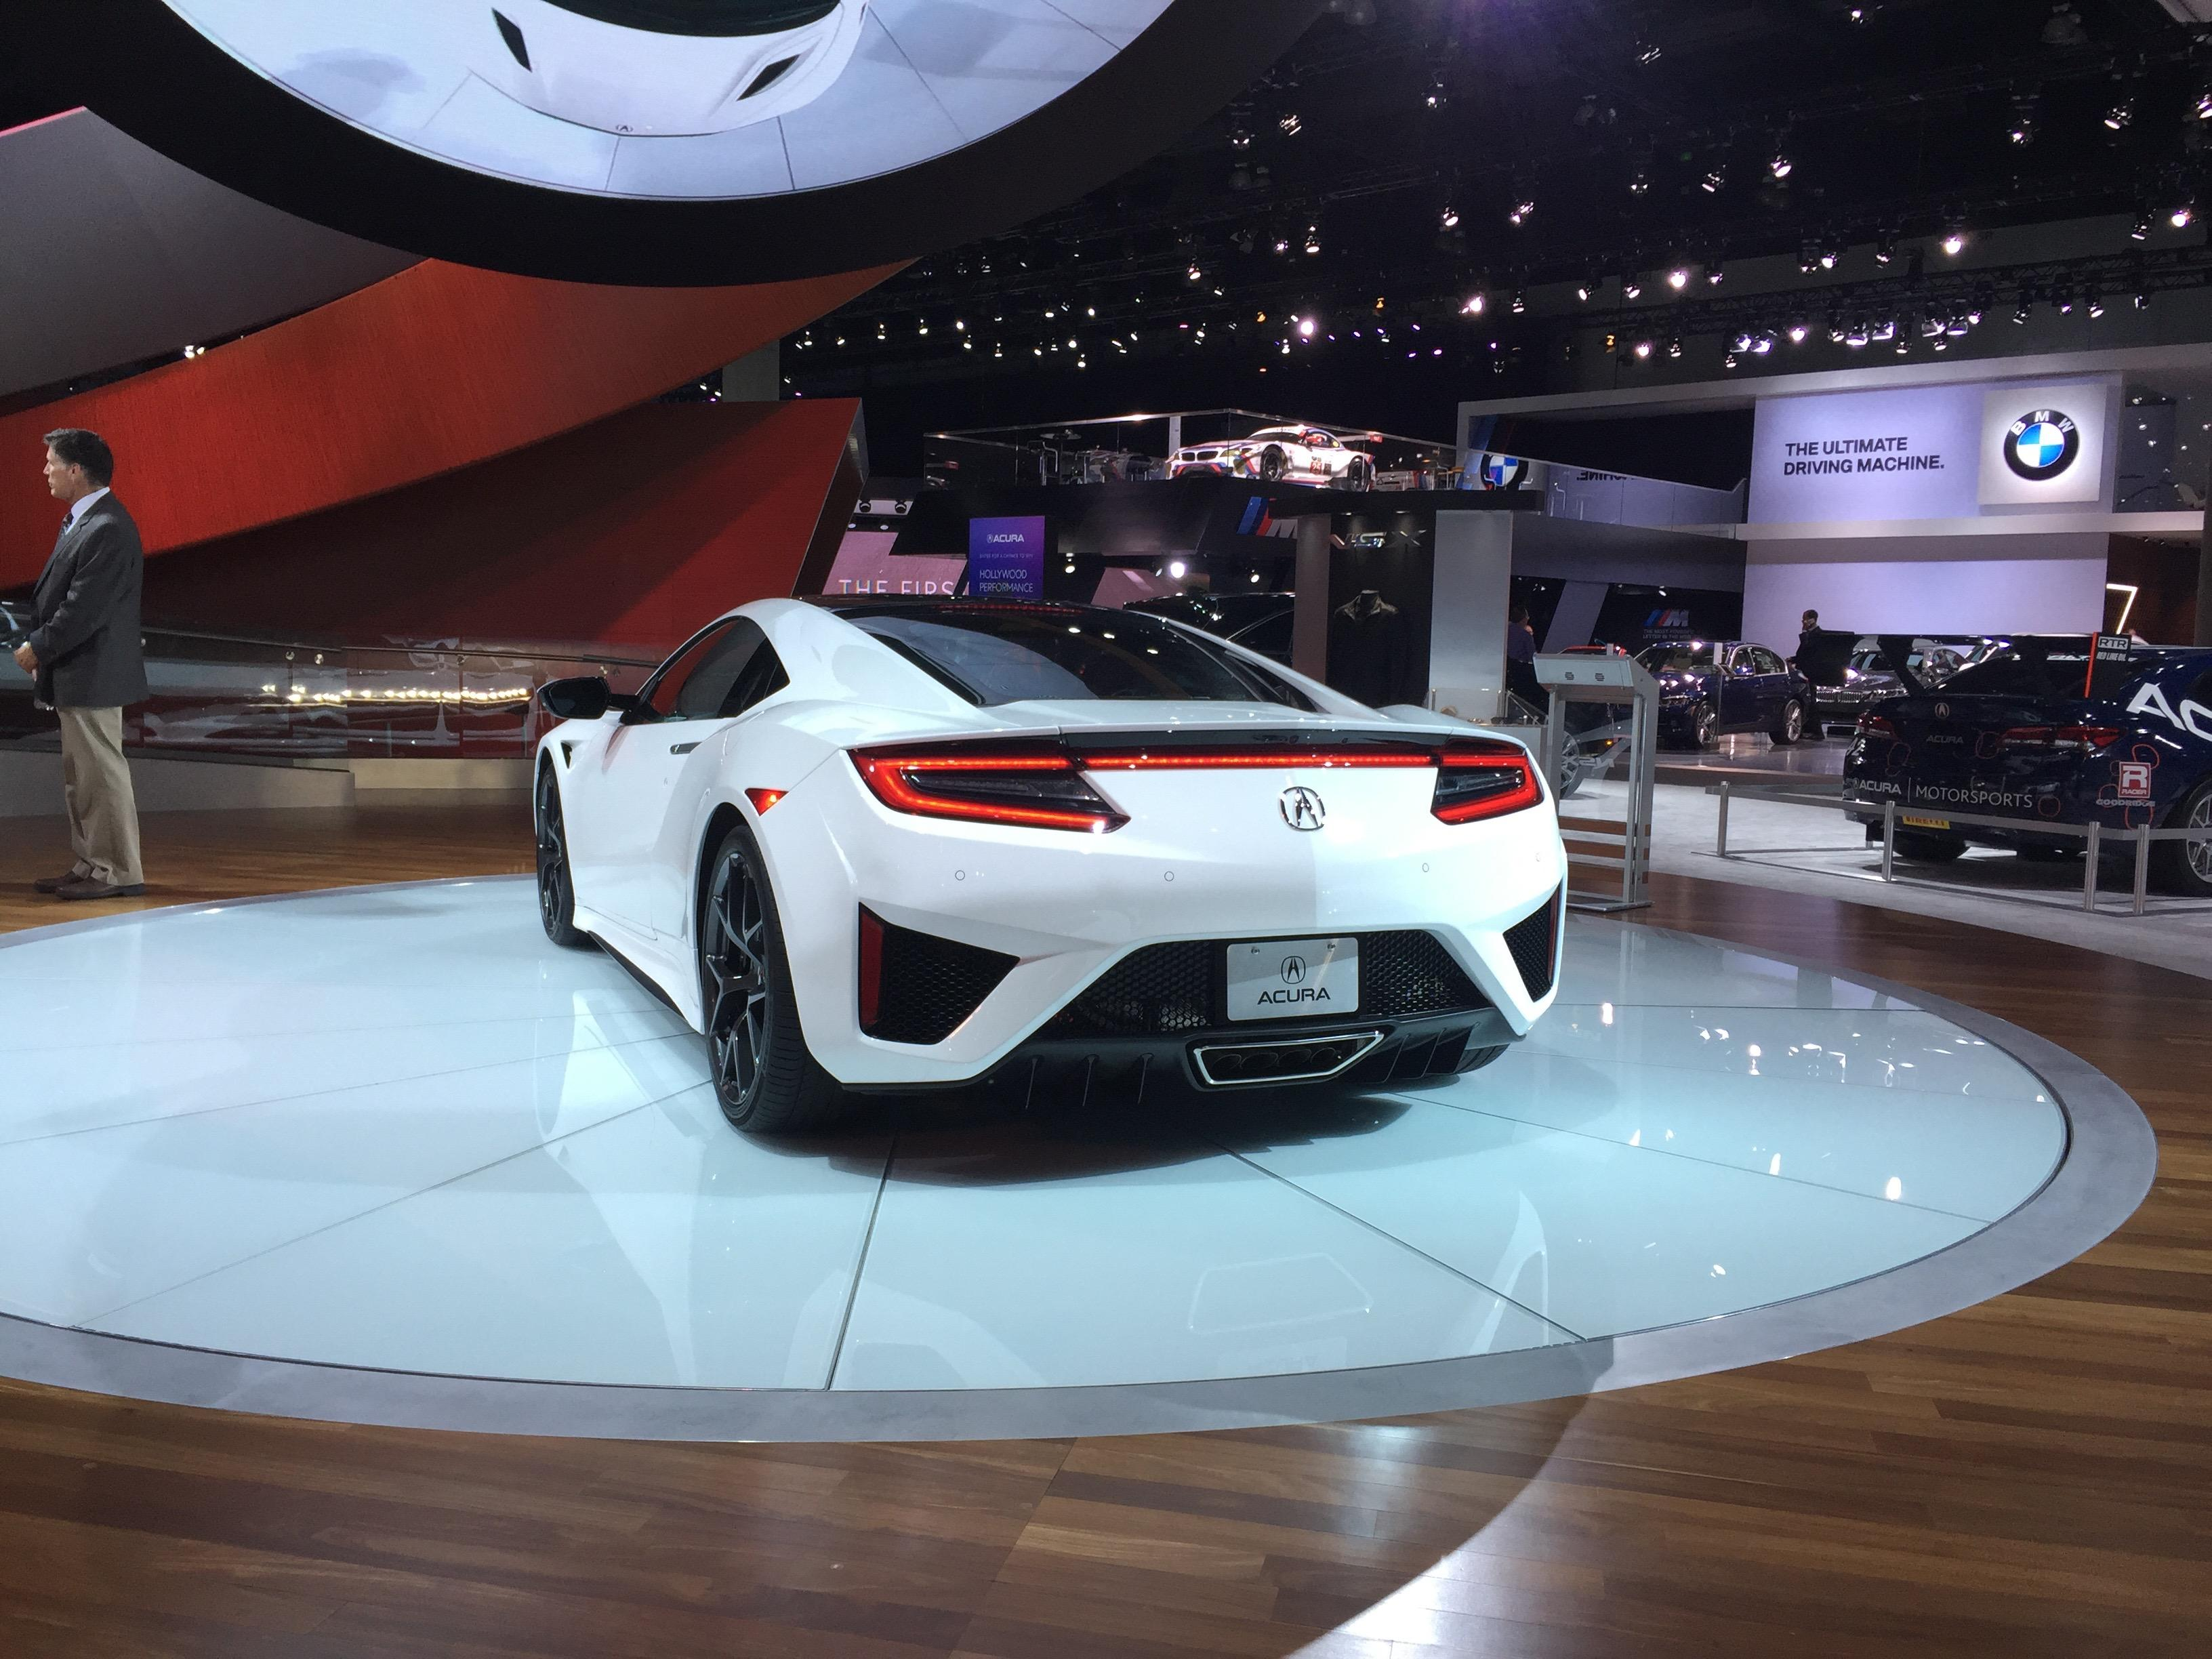 auto goes los photo nsx soon gallery who wjar gets by sale angeles first news matters at the one on show display acura